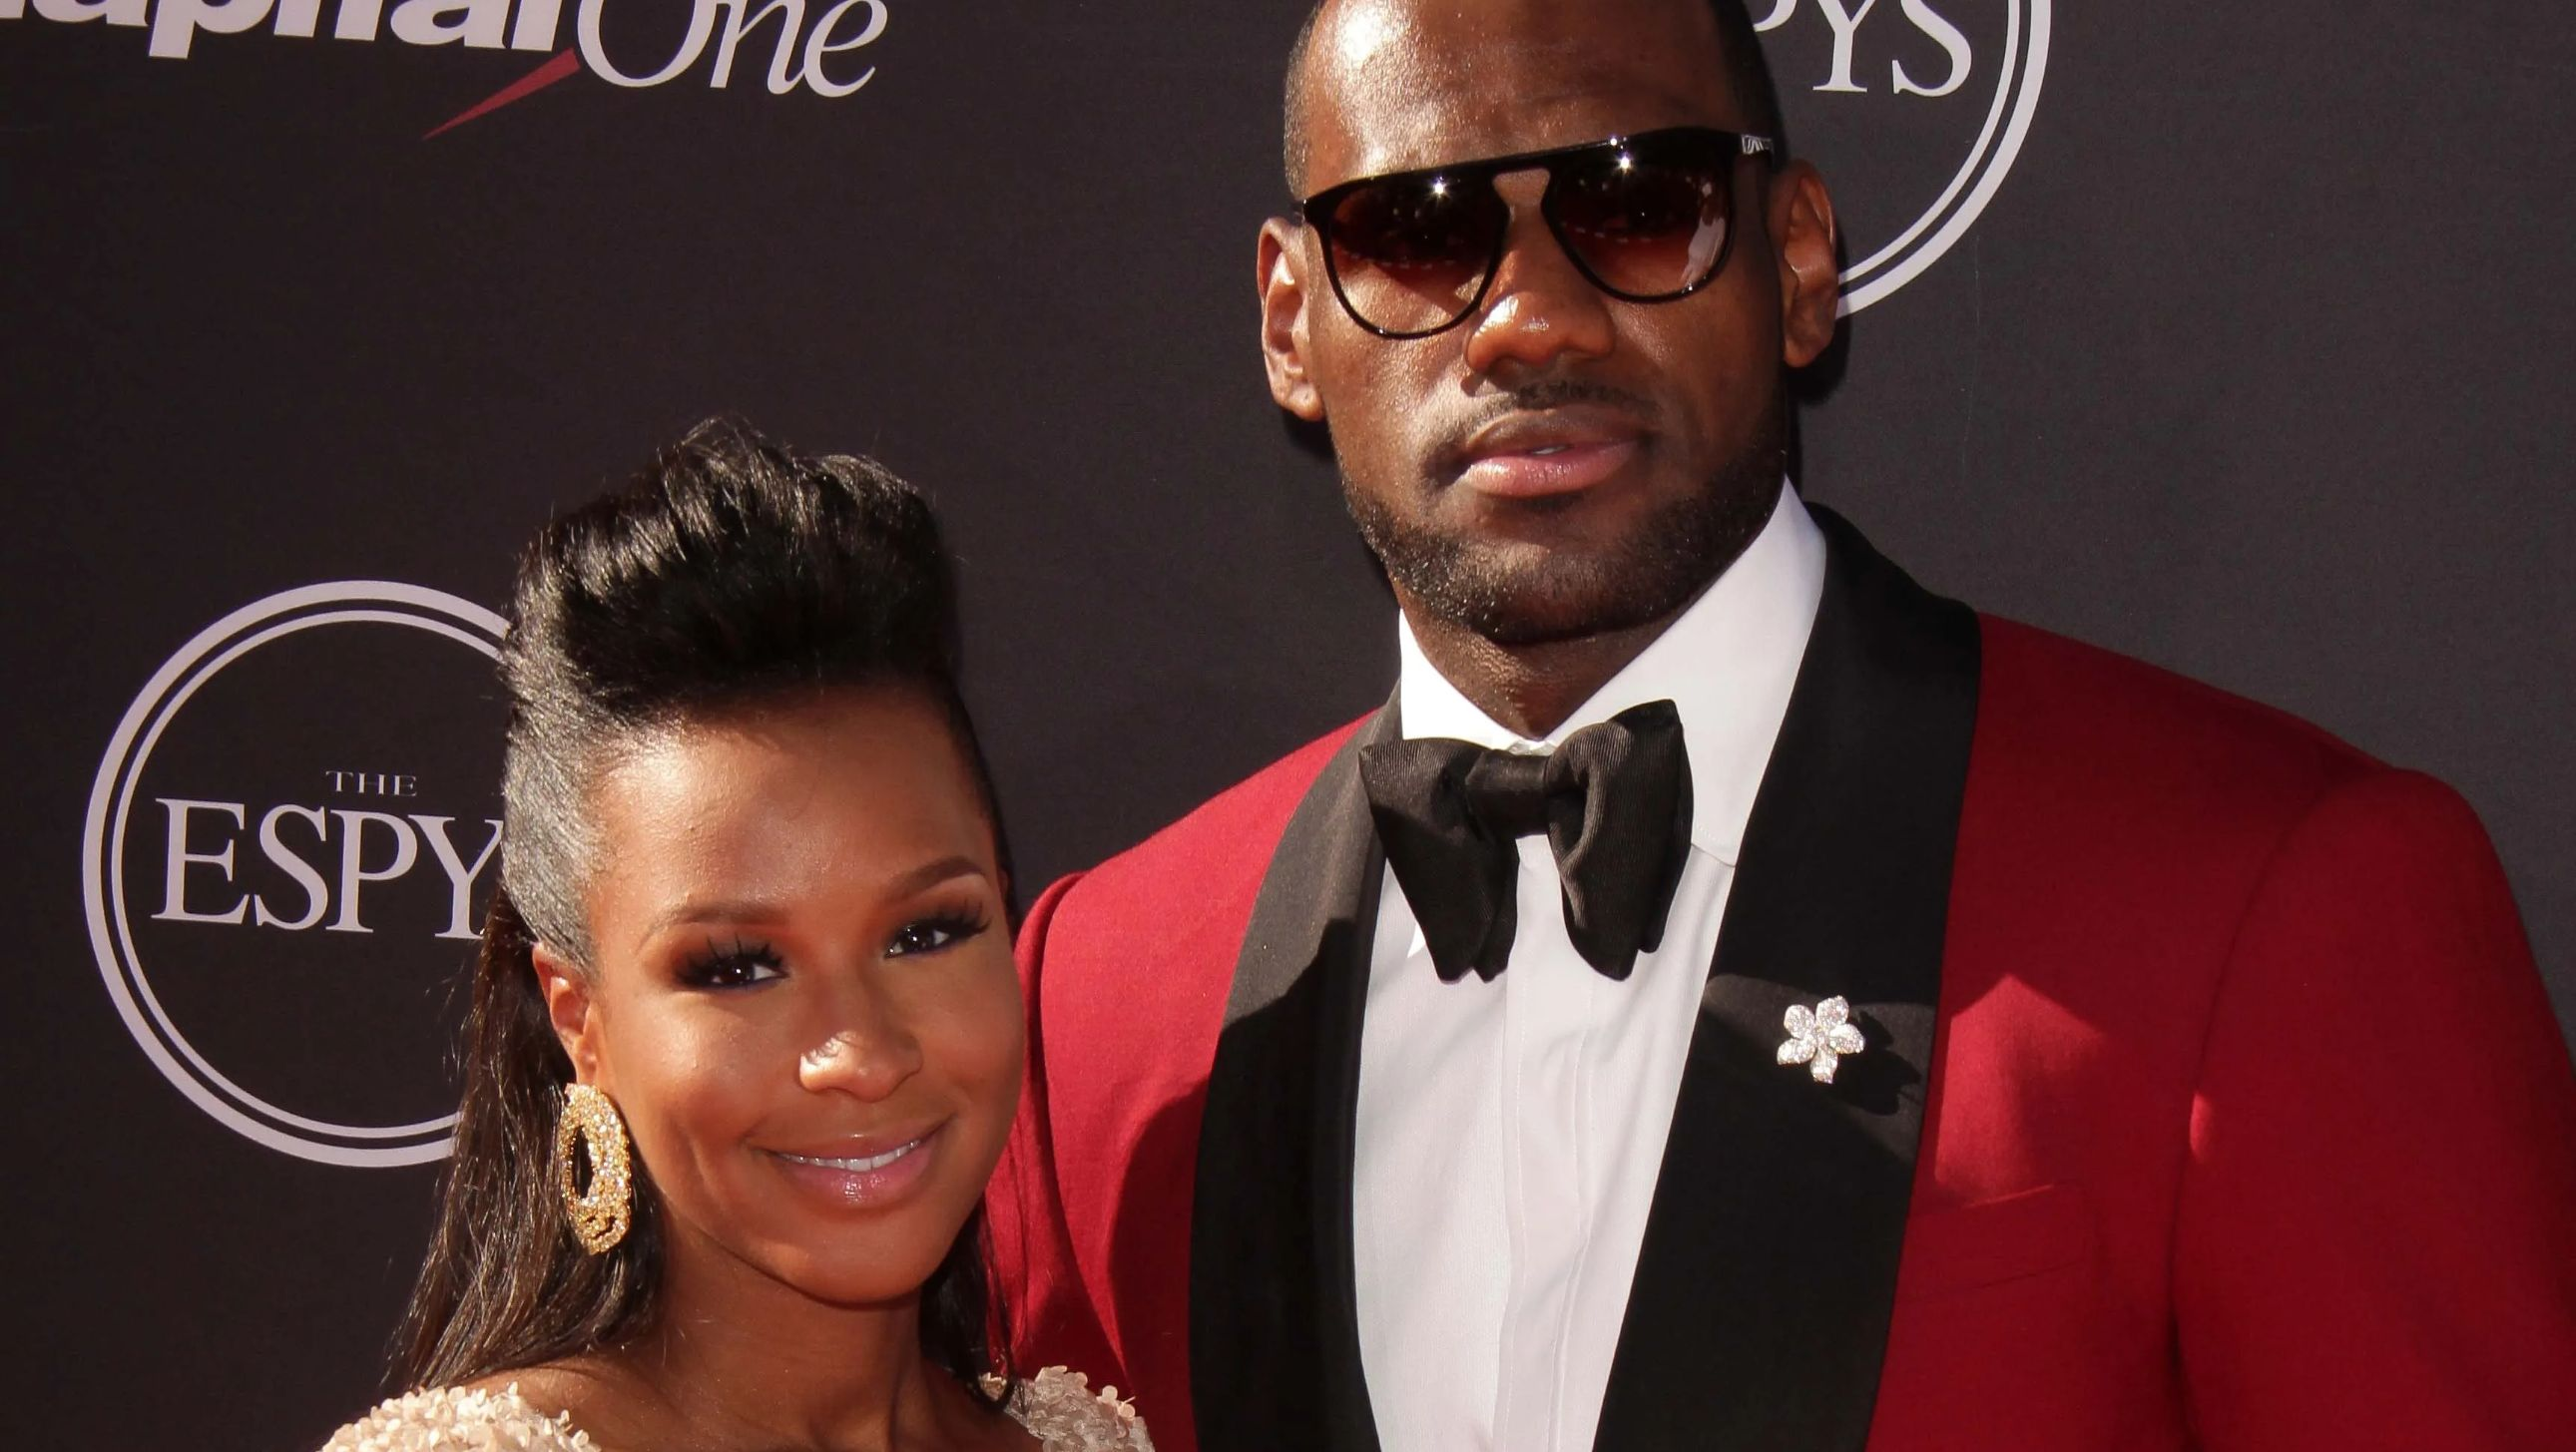 Lebron James with wife Savannah James at the red carpet of the Espy.